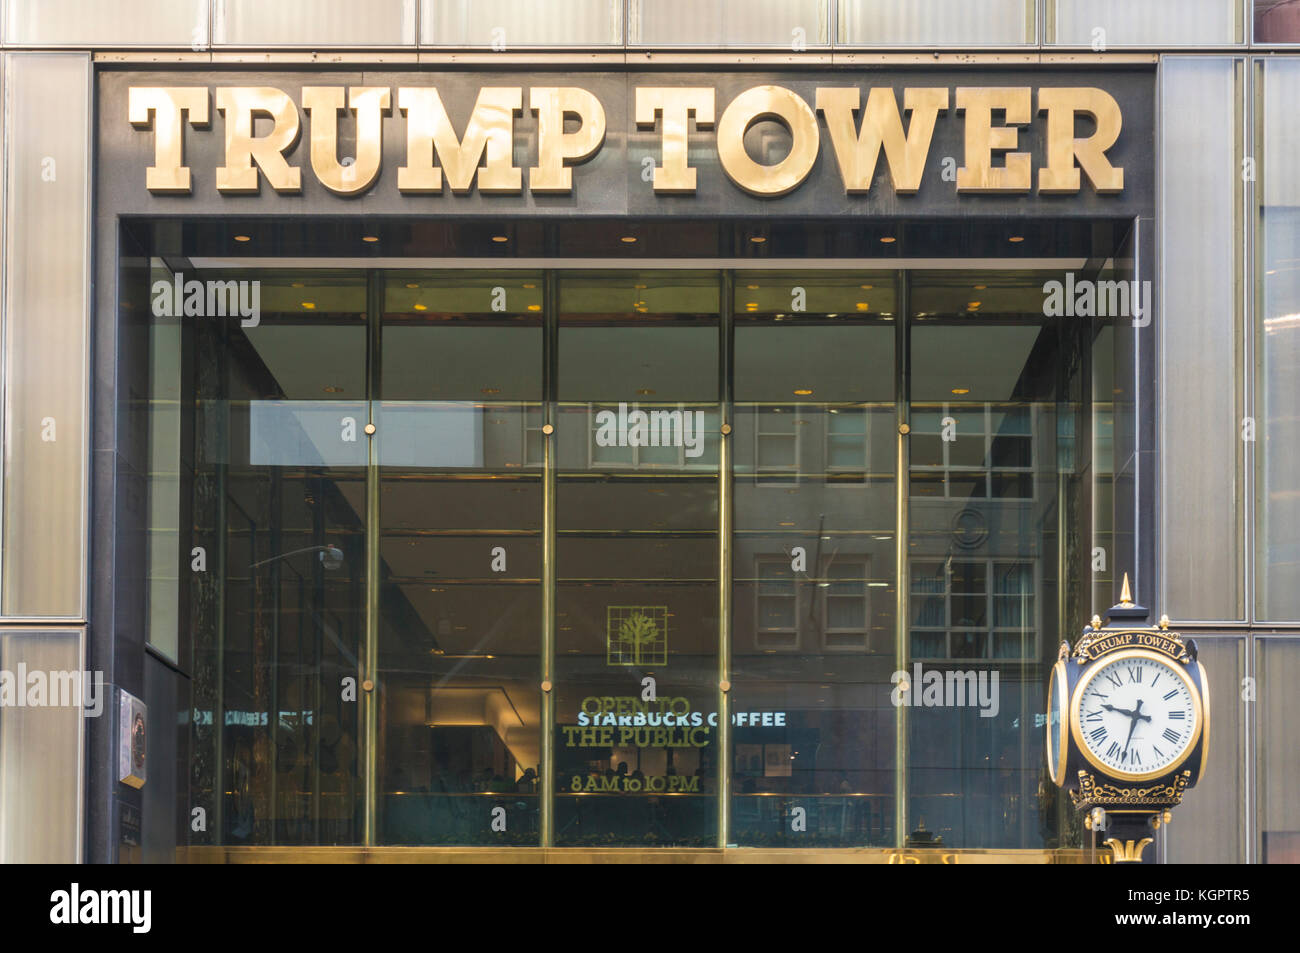 Trump Tower New York USA New York Trump Tower Außenfassade Midtown Manhattan New York City usa Stockbild